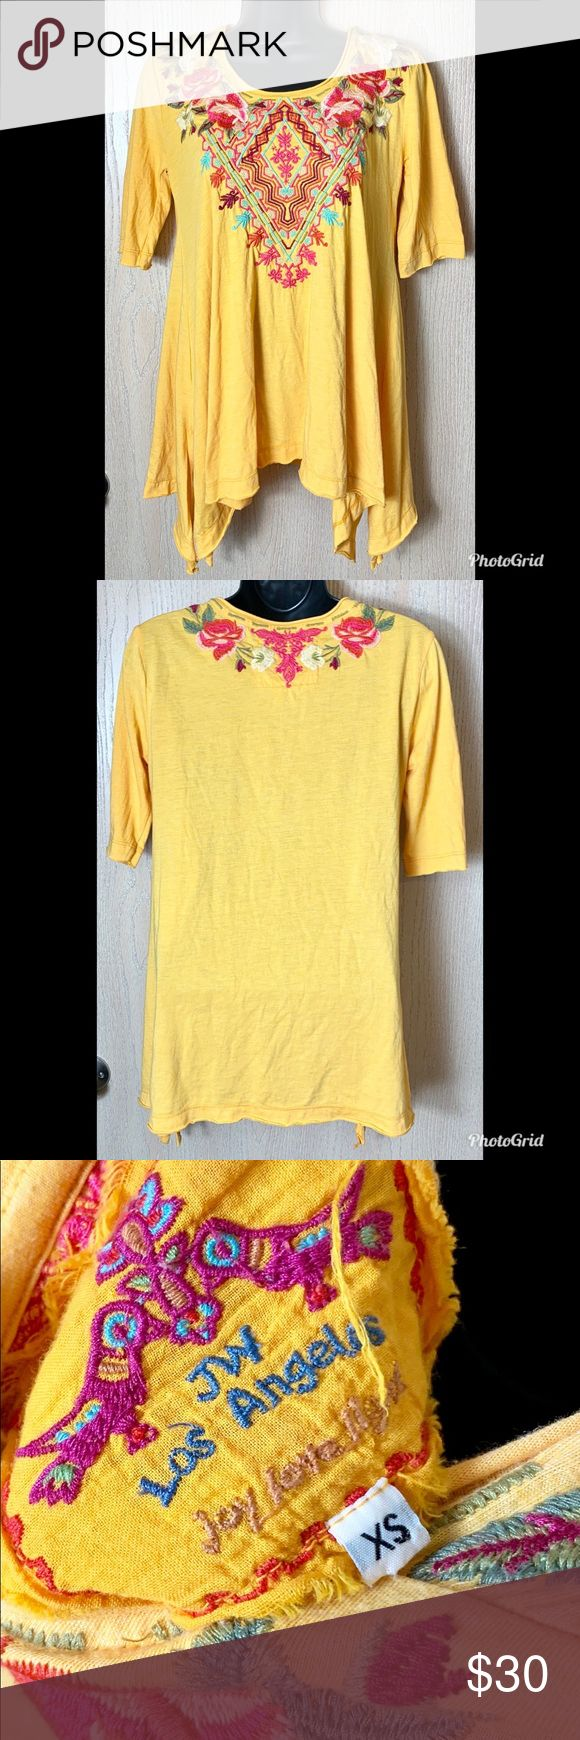 JW Los Angeles Yellow Embroidered Top Sz XS JW Los Angeles